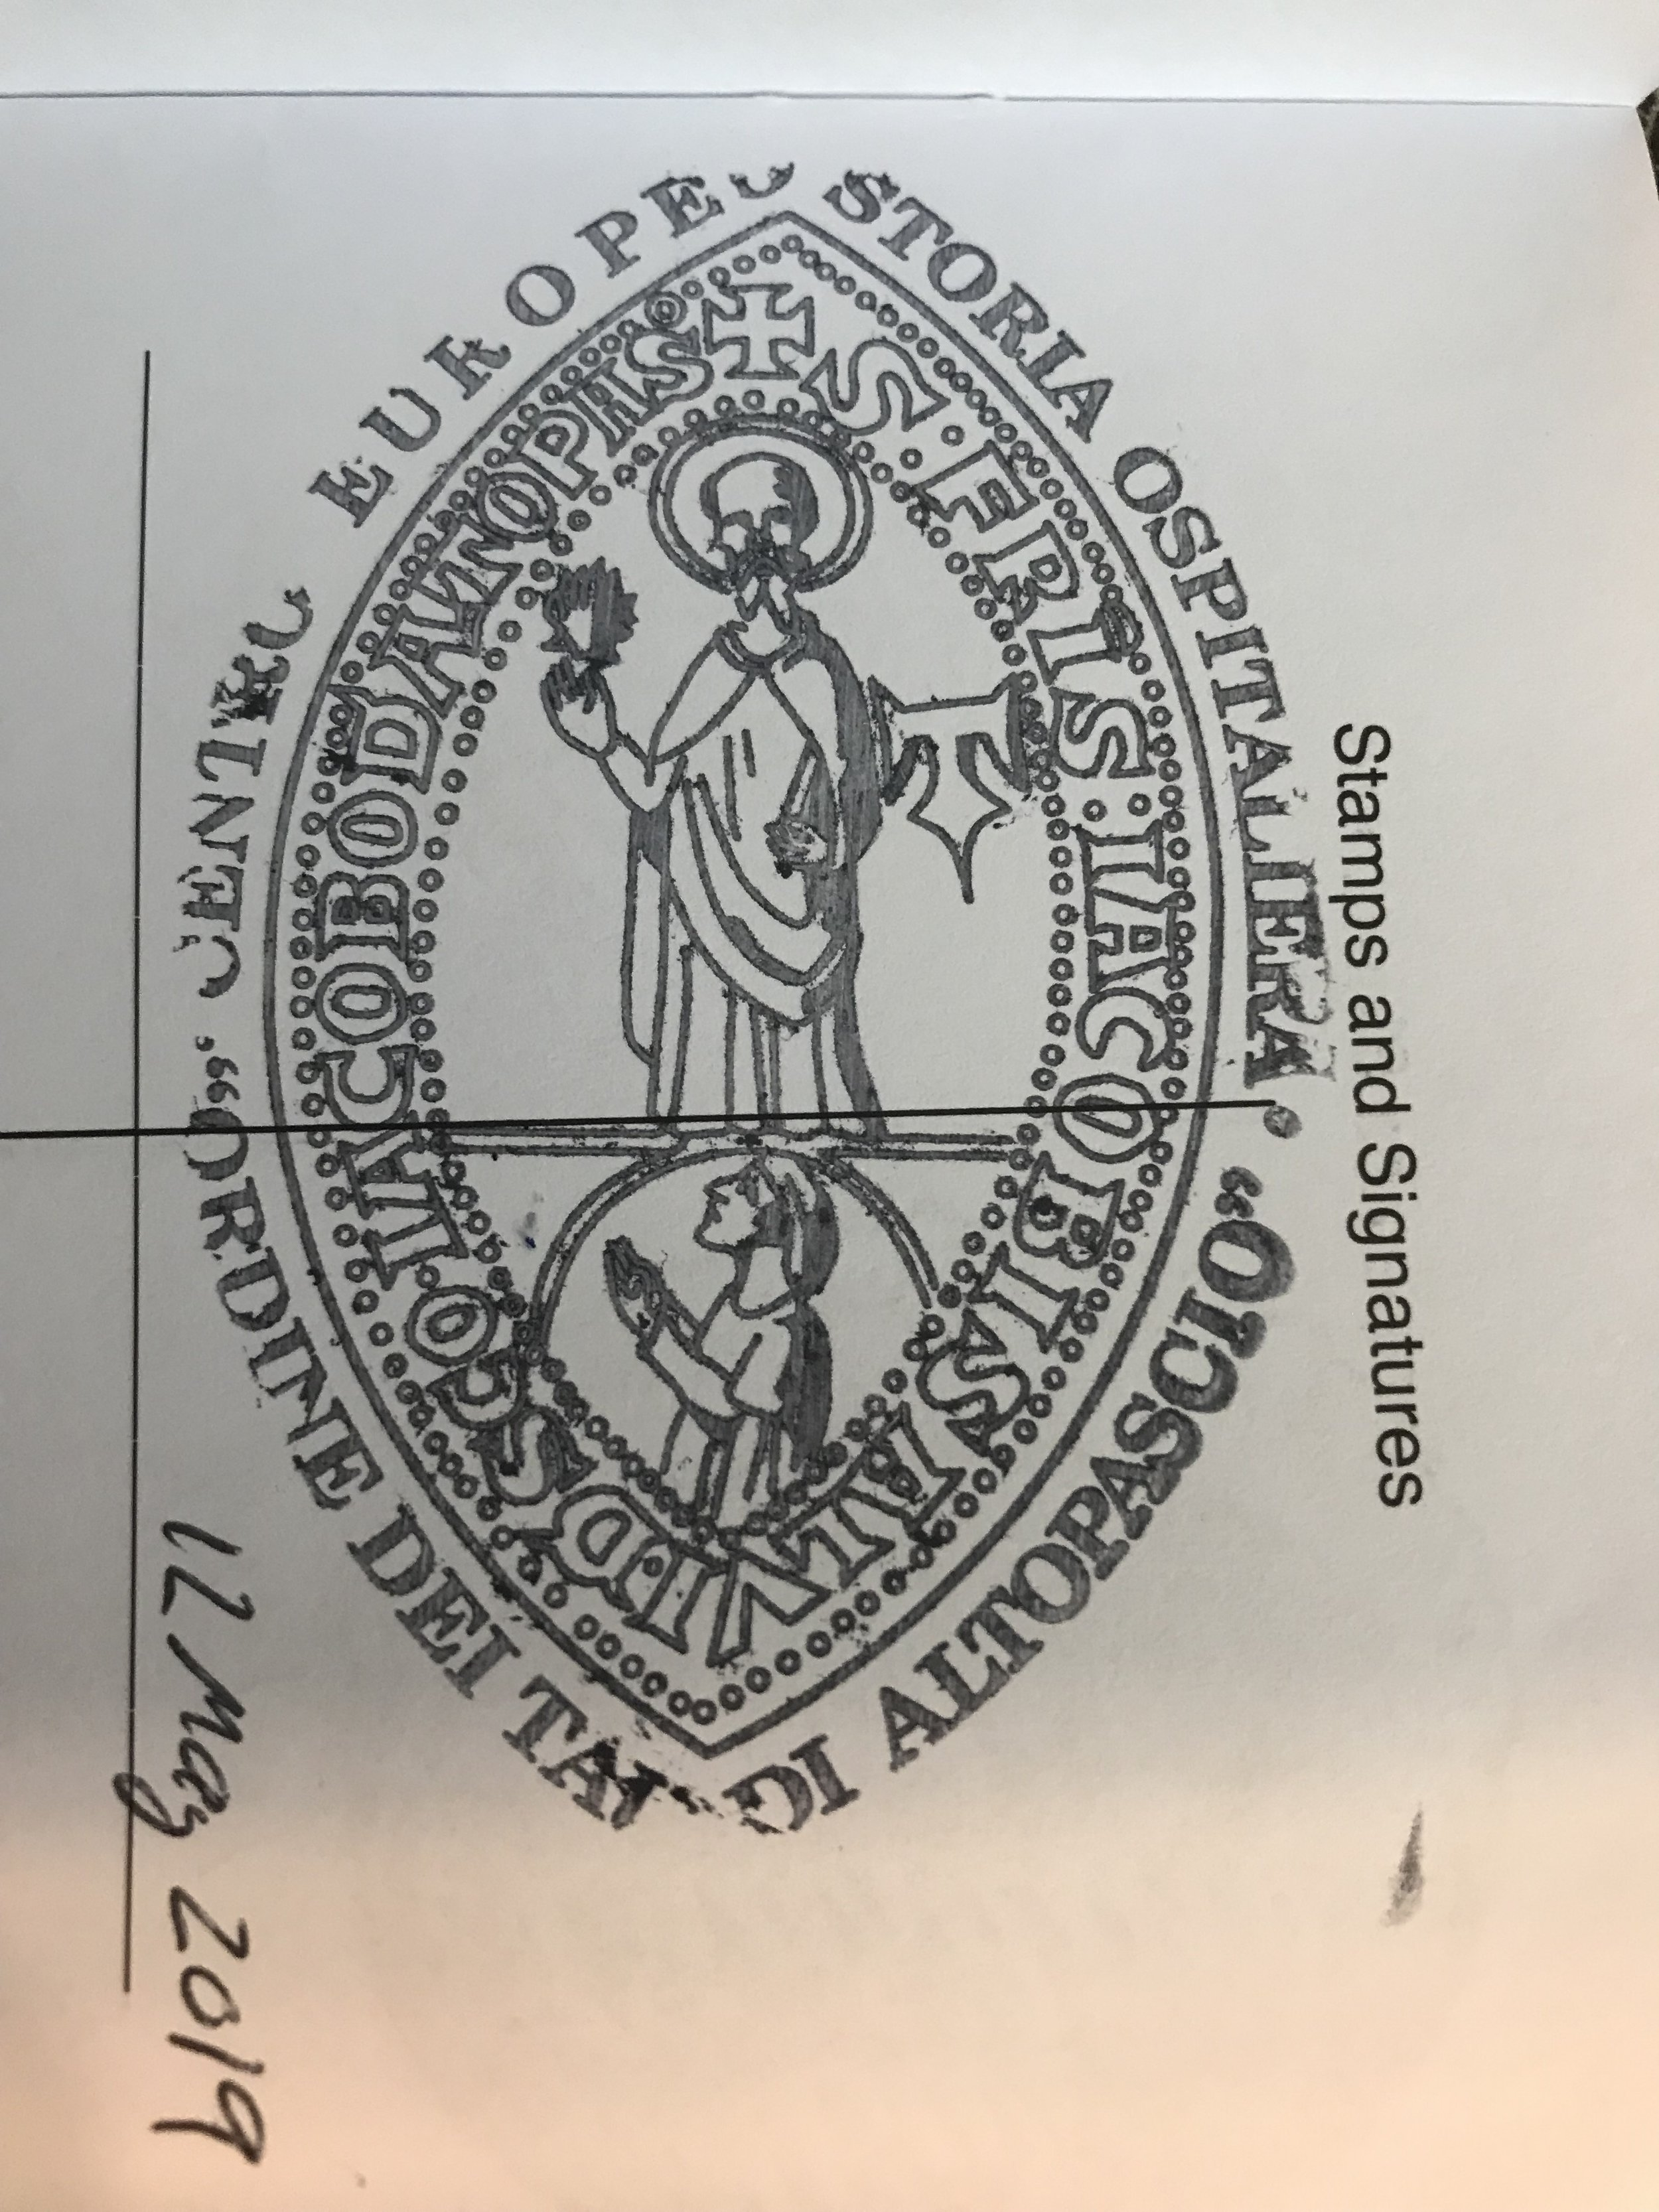 A great stamp from the town of Altopascio, Italy